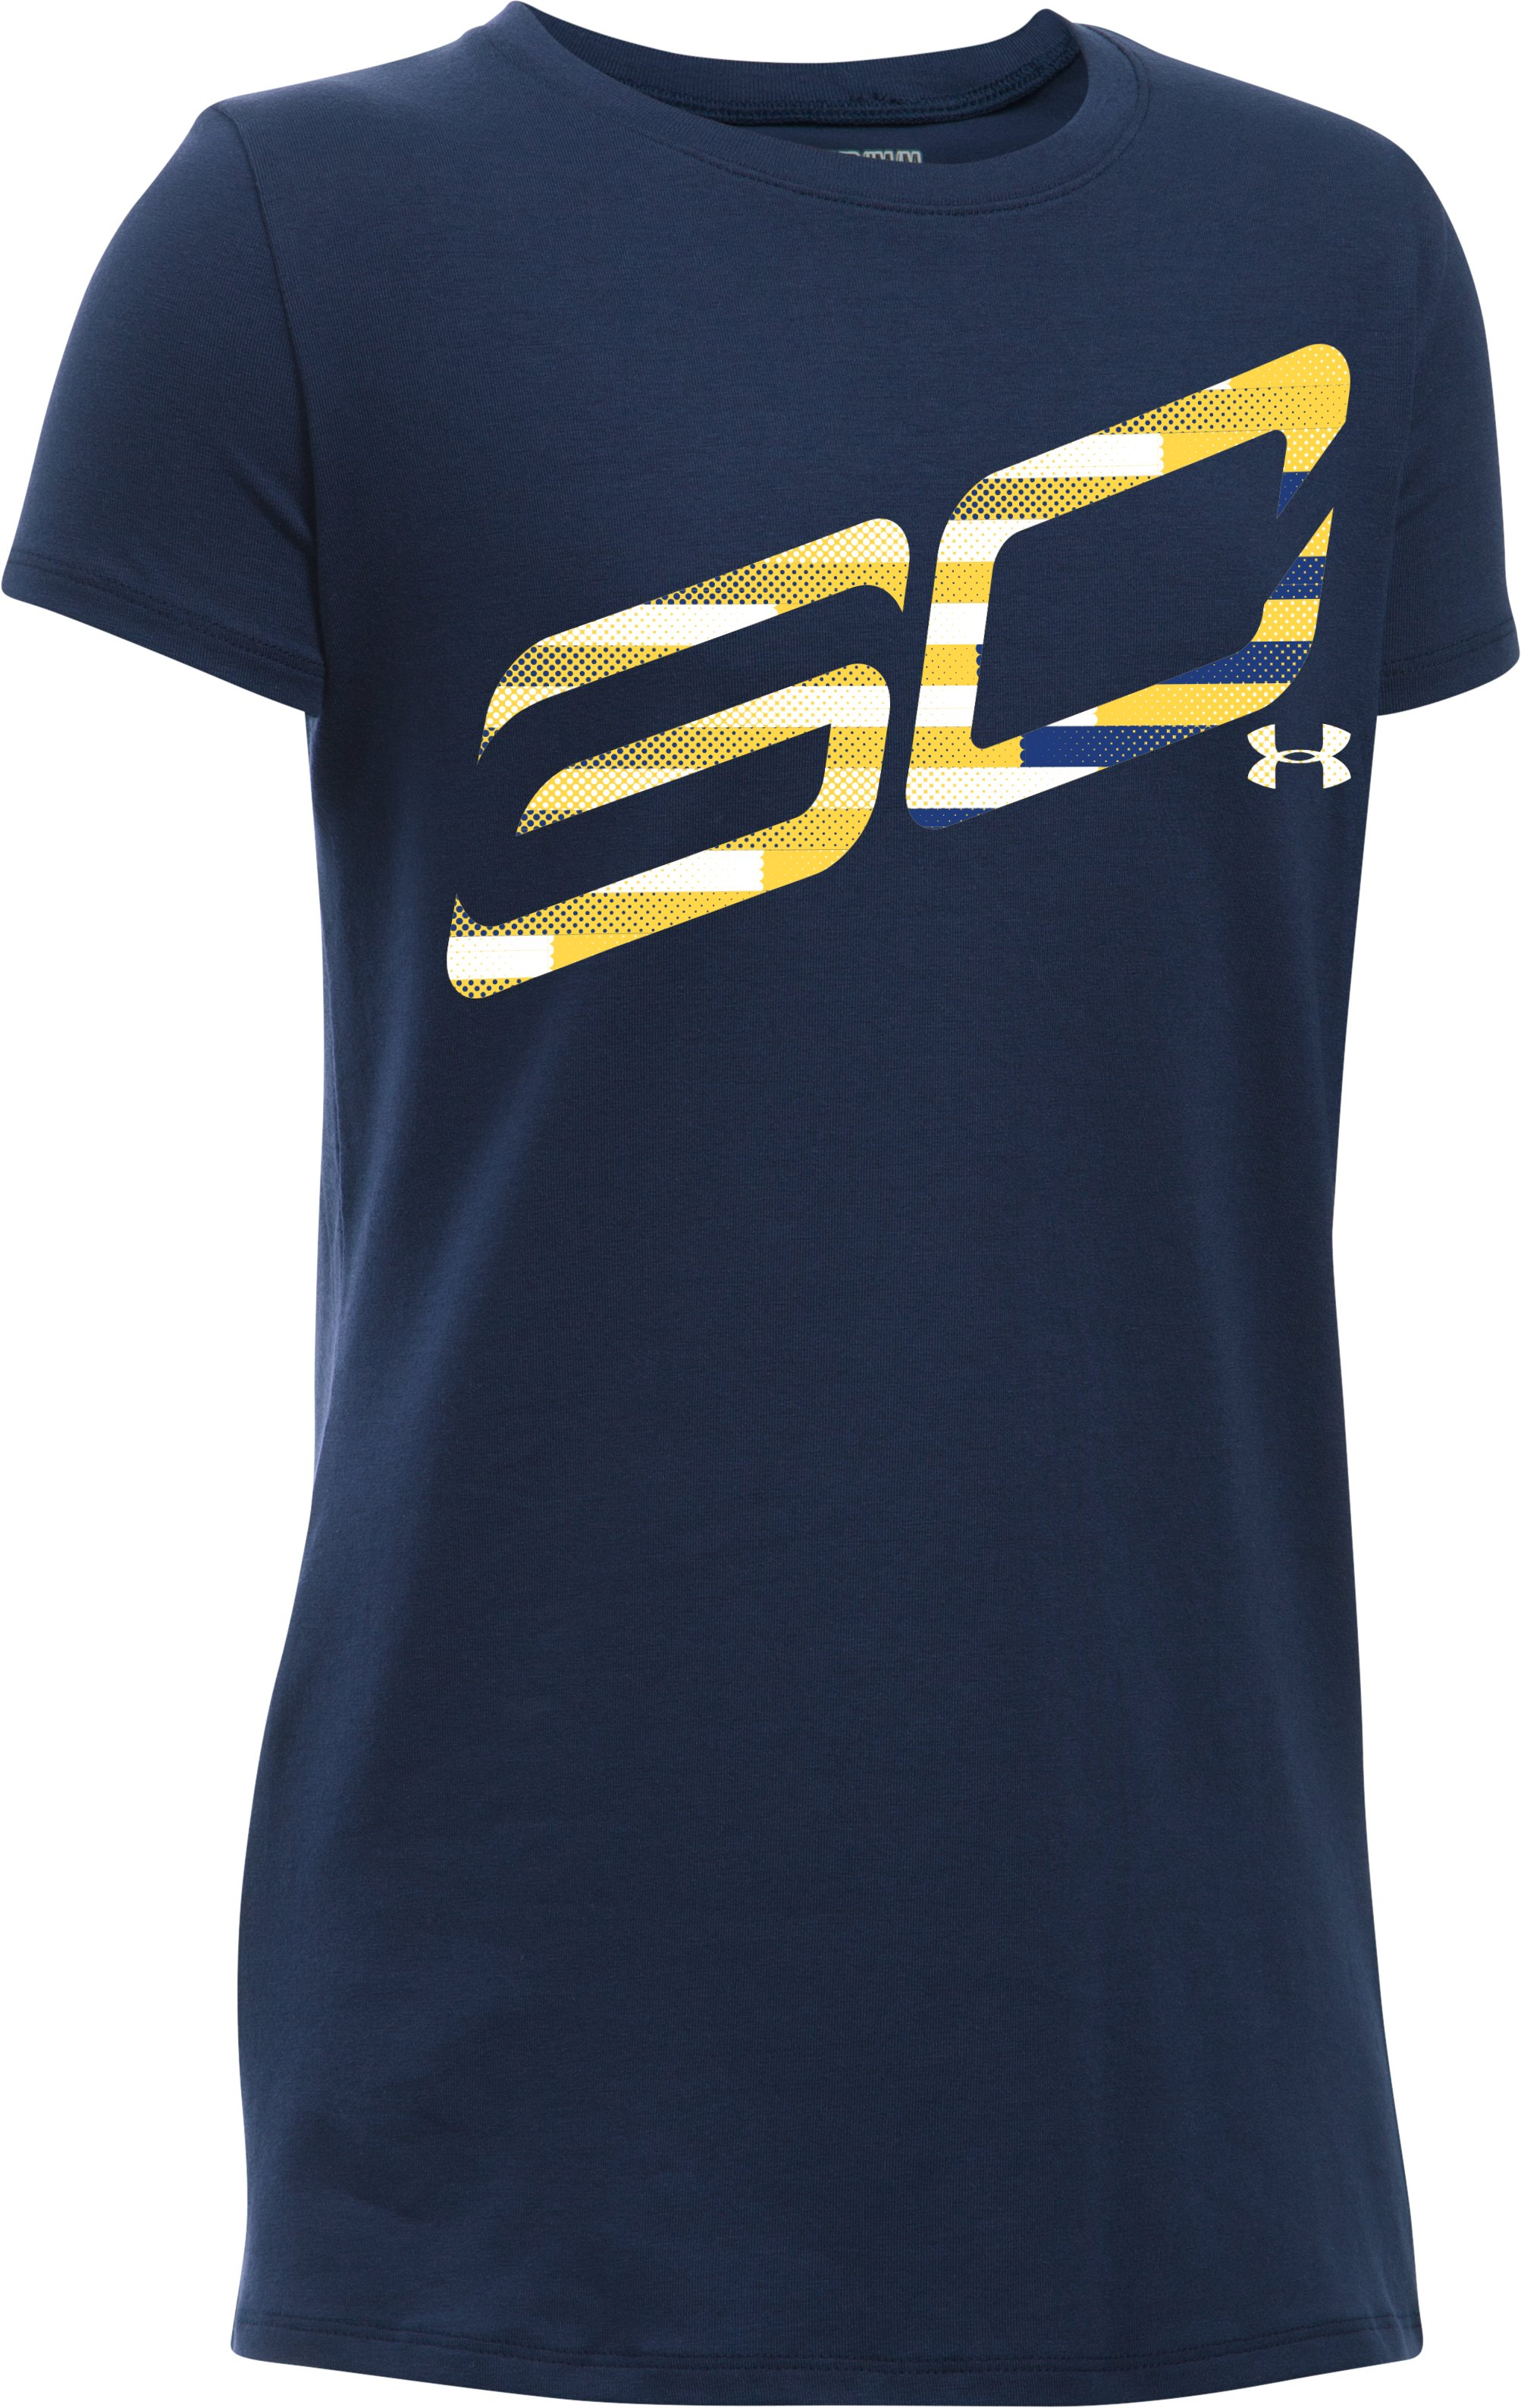 Girls' SC30 Logo T-Shirt, Midnight Navy, undefined